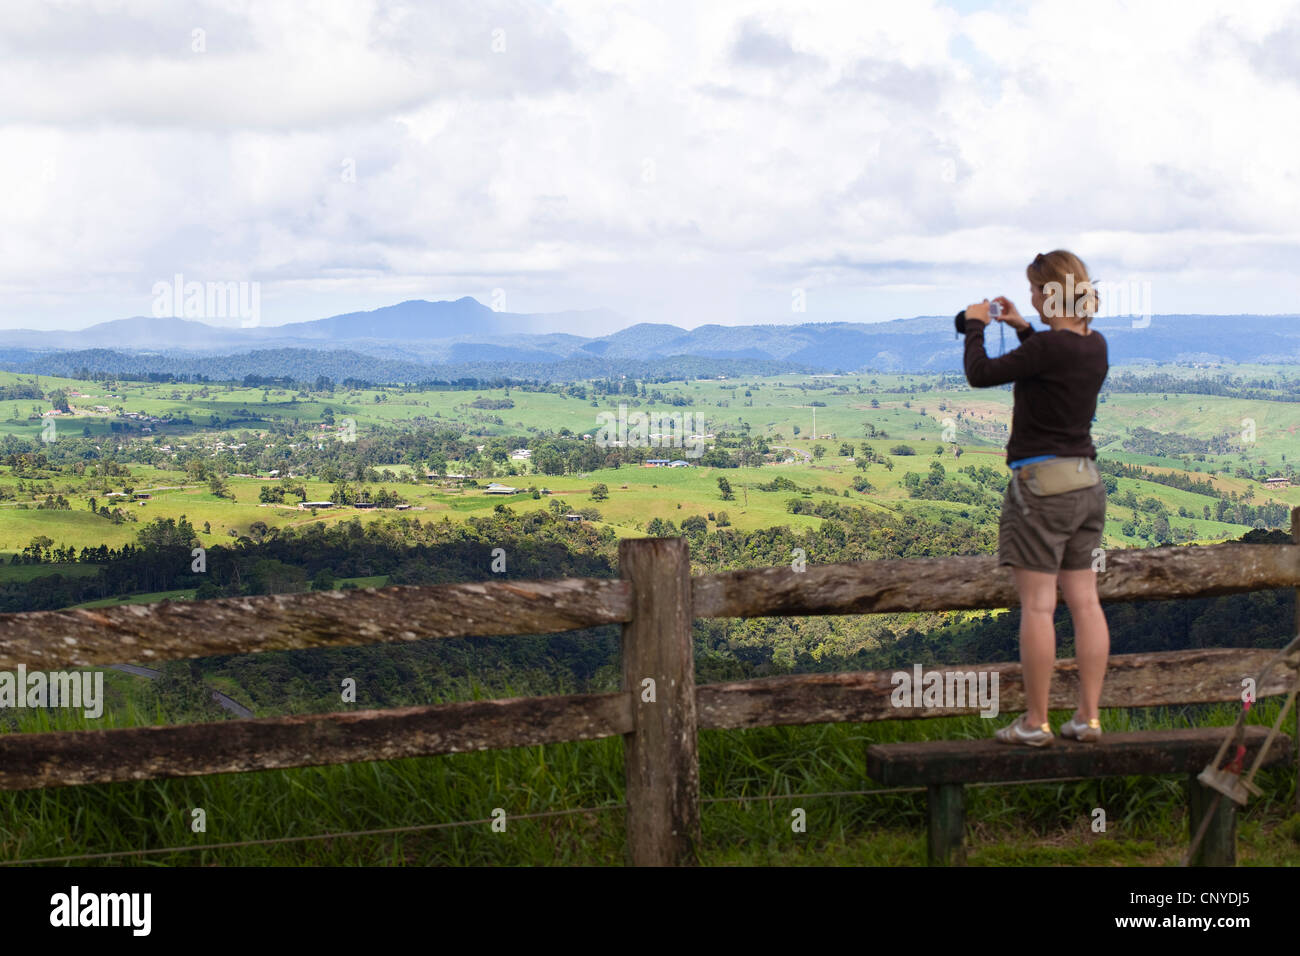 young woman standing on a bench an taking photos of undulating hills of the Atherton Tablelands, Australia, Queensland, - Stock Image